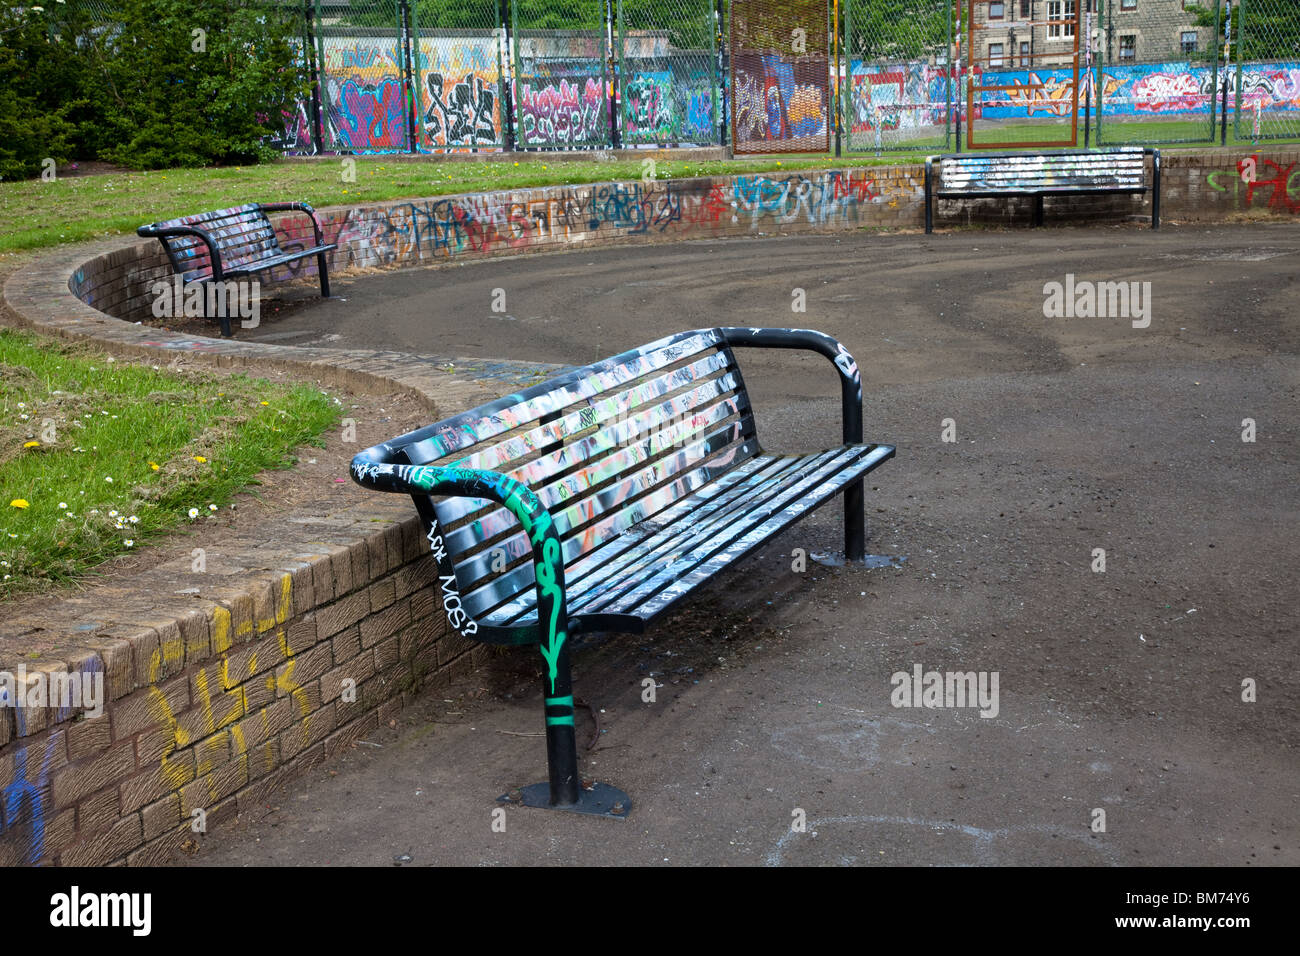 Legal graffiti wall and Metal framed bench around mains road, Hilltown Dundee, Dundee City, Scotland, UK - Stock Image